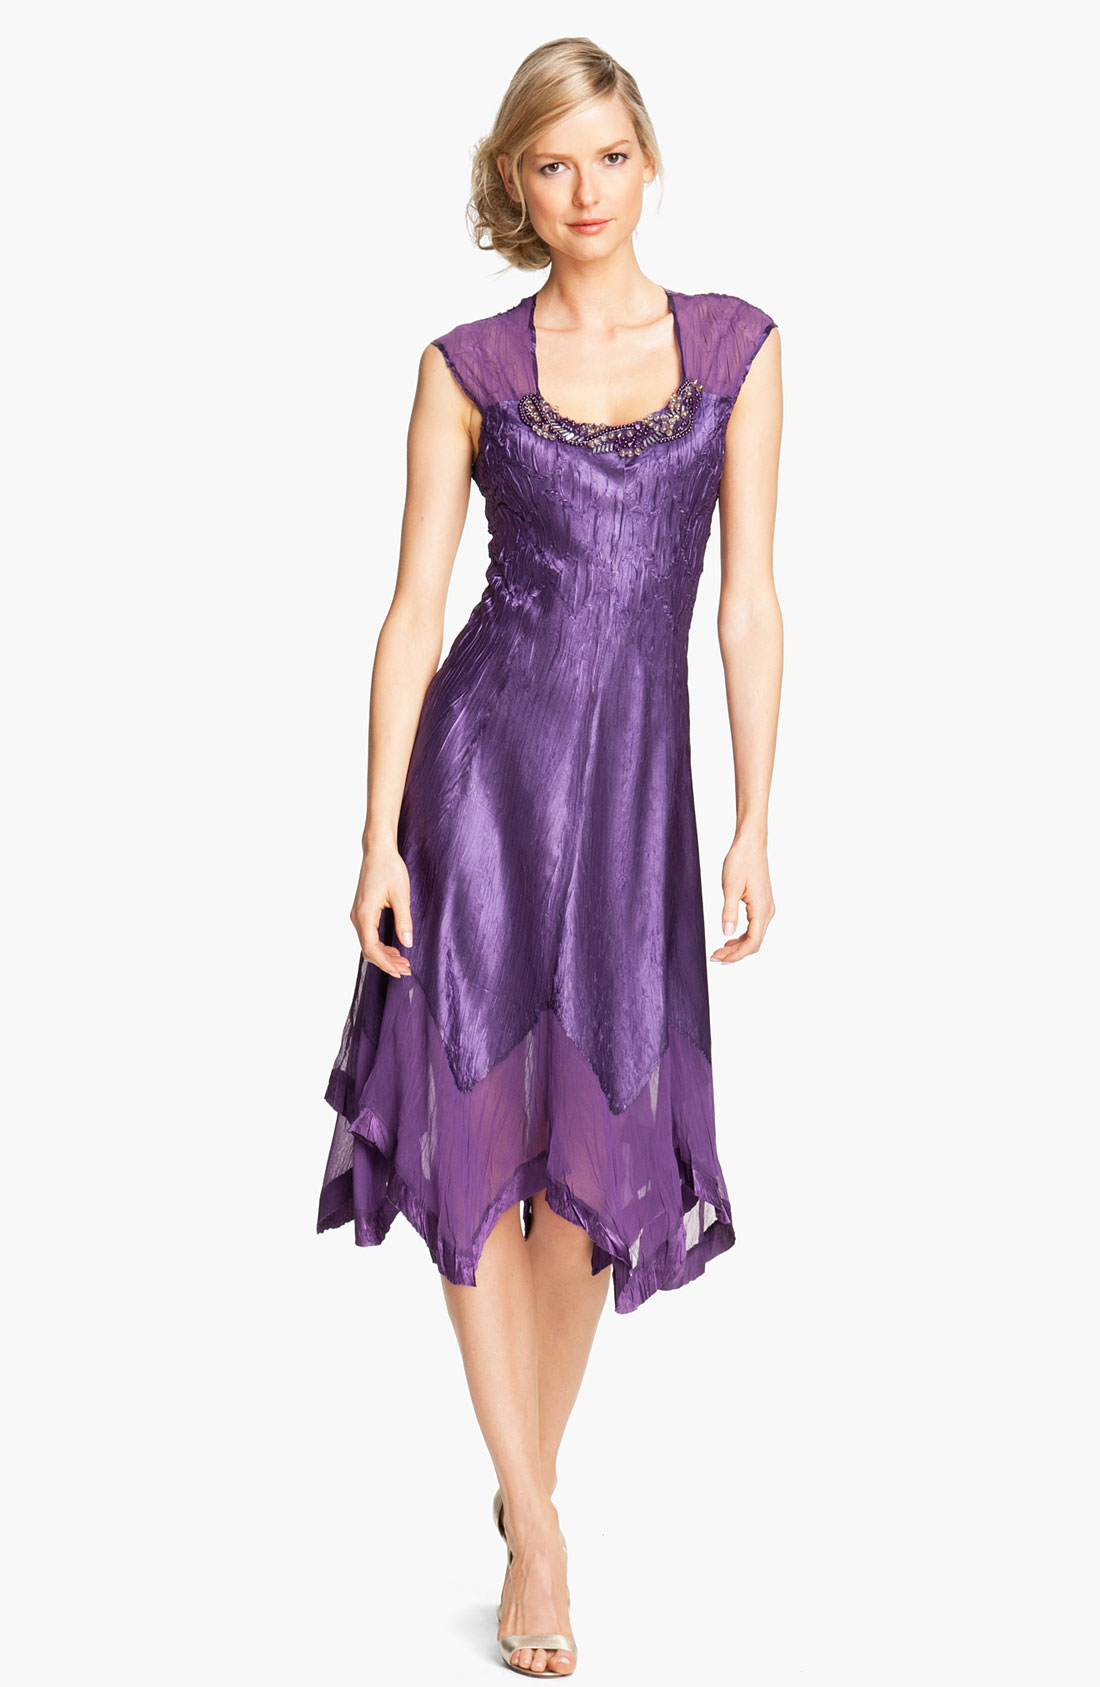 Amazing Macys Offers The Style &amp Co Womens Petite Printed HandkerchiefHem Dress In MultiPrint For $1796 Pad Your Order With A Beauty Item Eligible Items Start At $2 To Bag Free Shipping Otherwise, Shipping Adds $1095 Thats $52 Off List